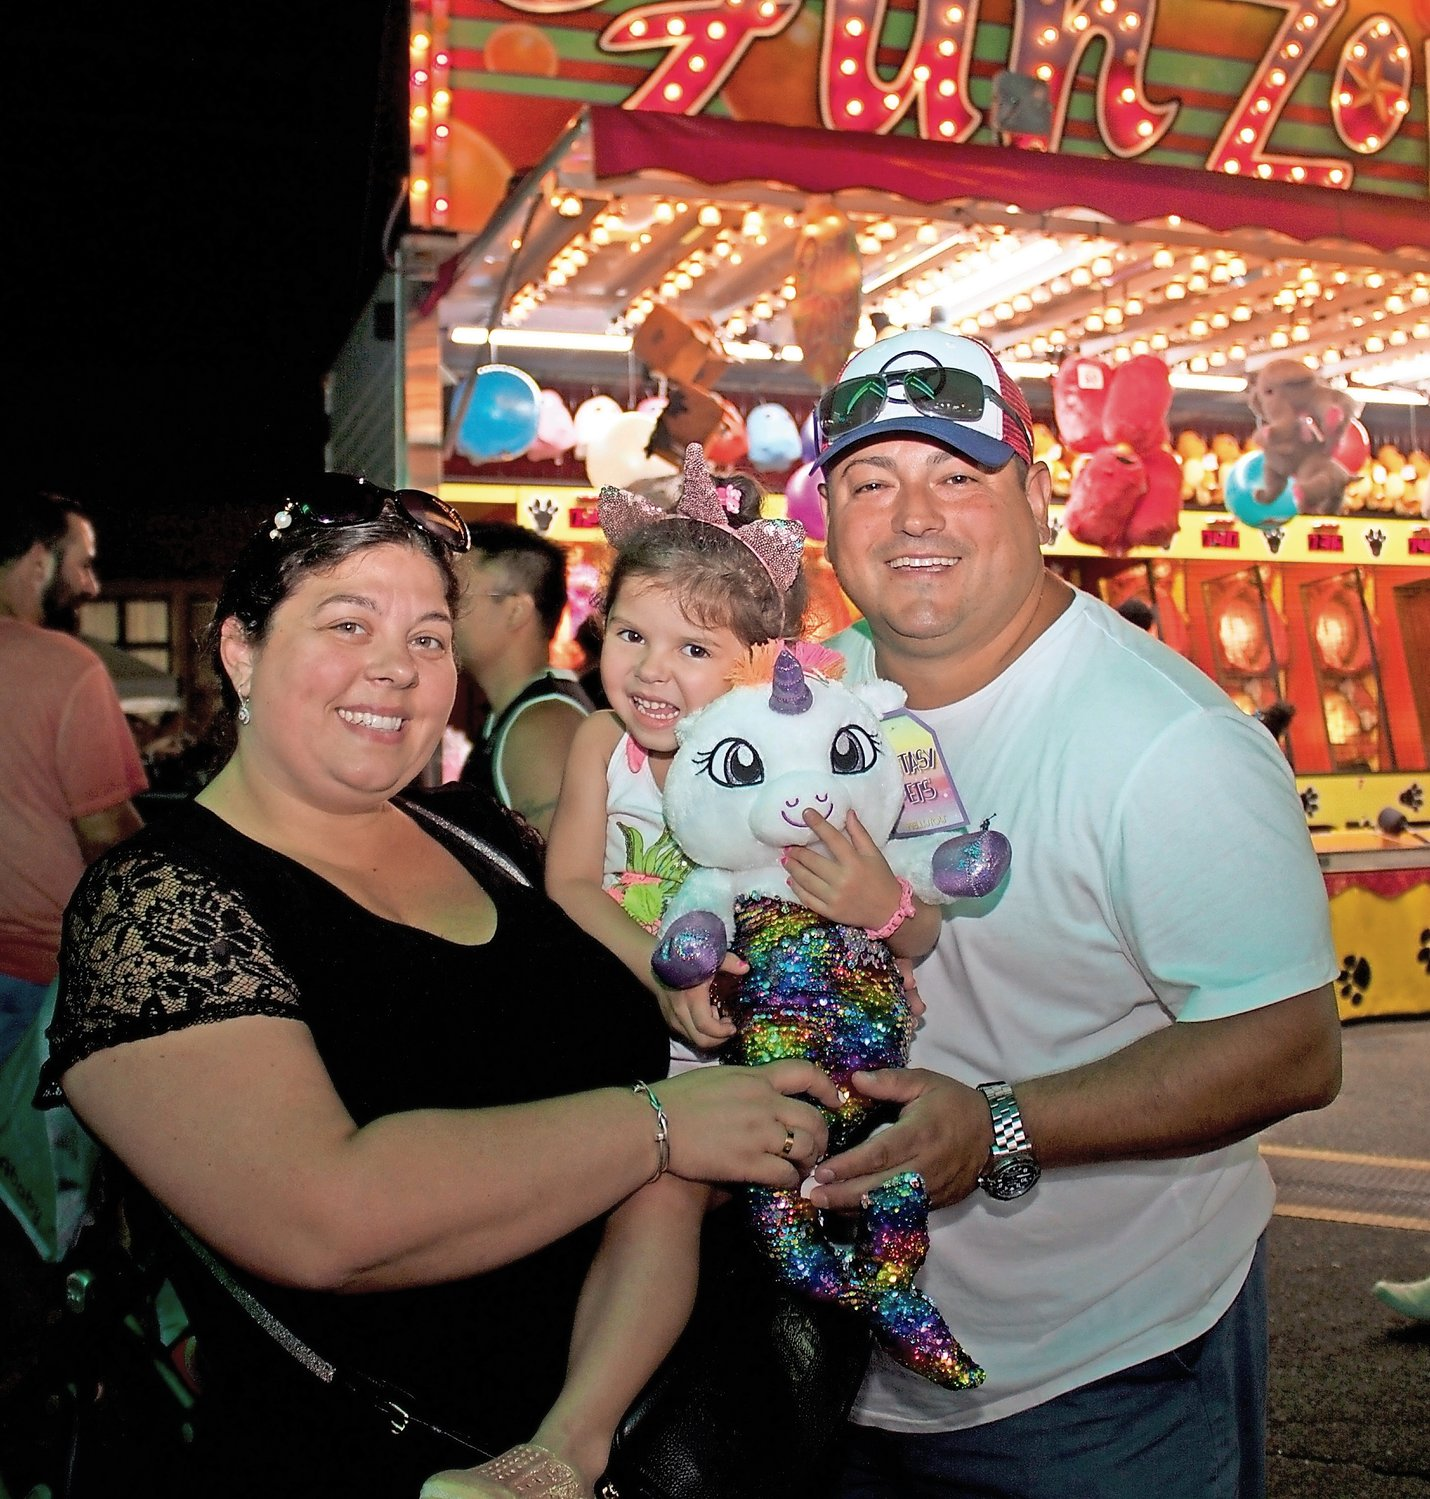 Silvana, left, and Adrian Campodonico brought their daughter Valentina, 3, to enjoy the feast as a family.